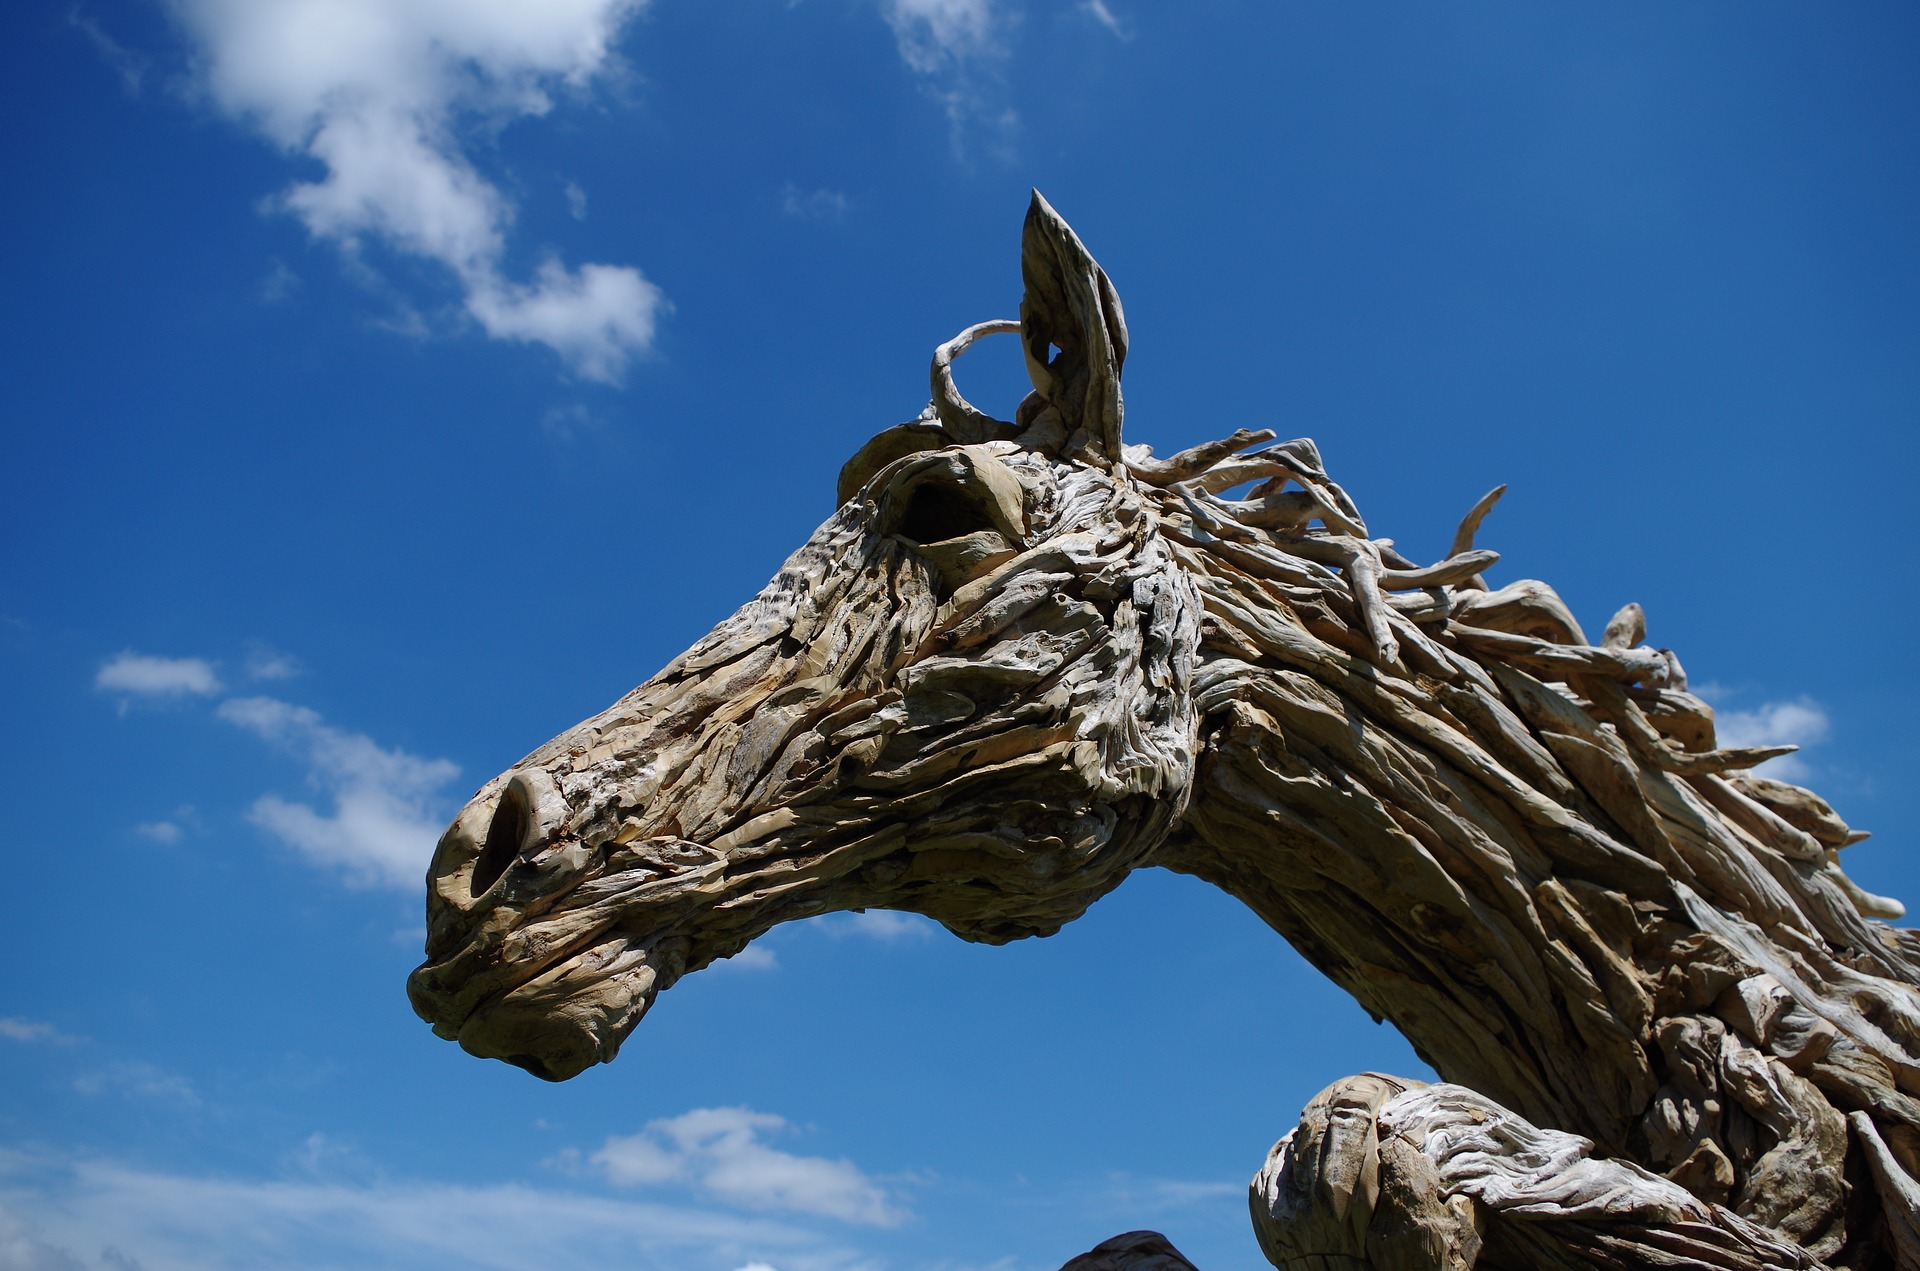 Horse Art made of Driftwood - My Favourite Beach for Beachcombing